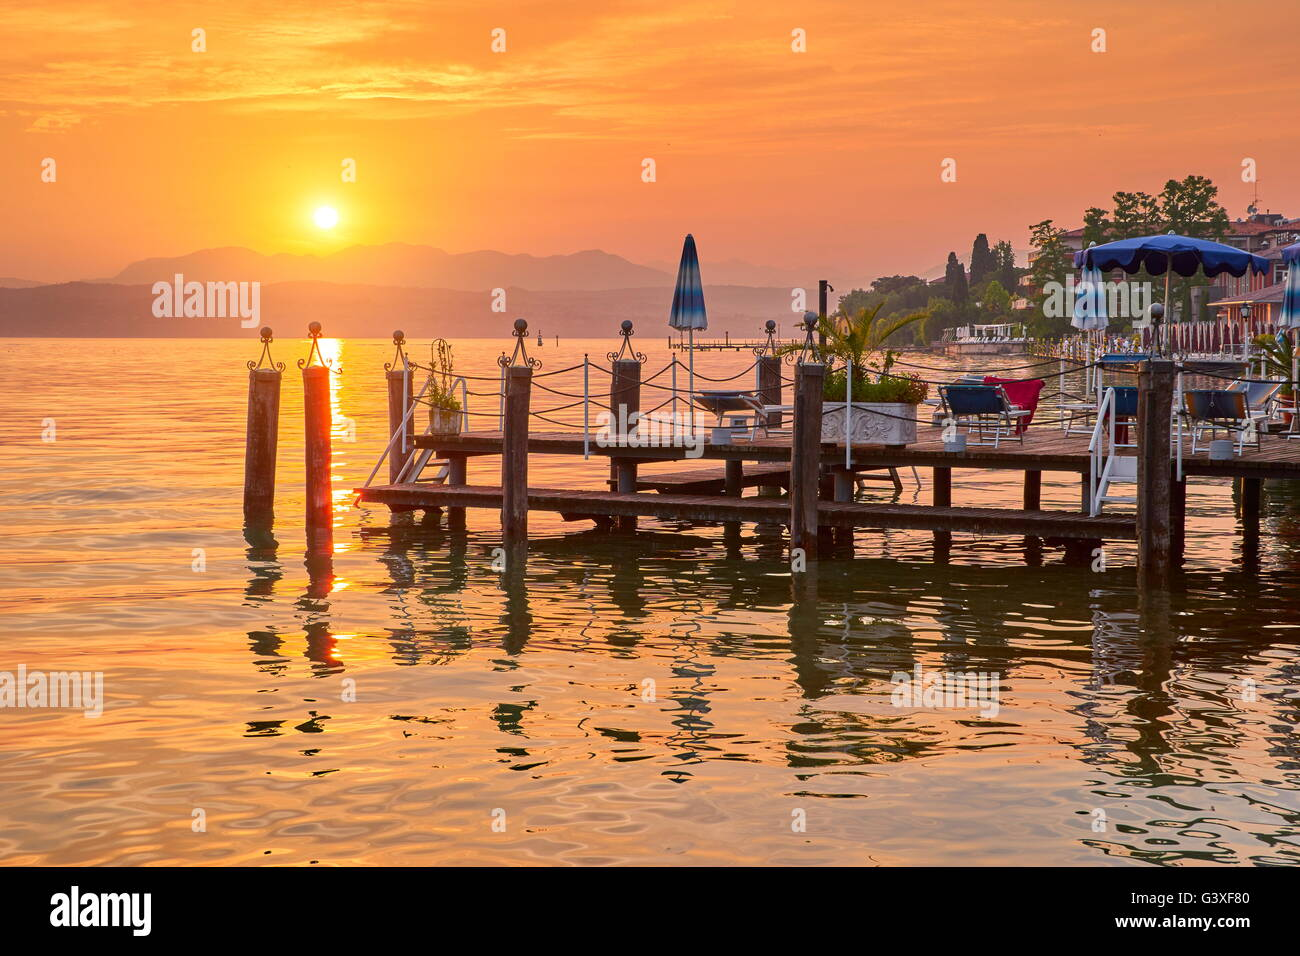 Sunset view at Garda Lake, Sirmione, Lombardy, Italy - Stock Image